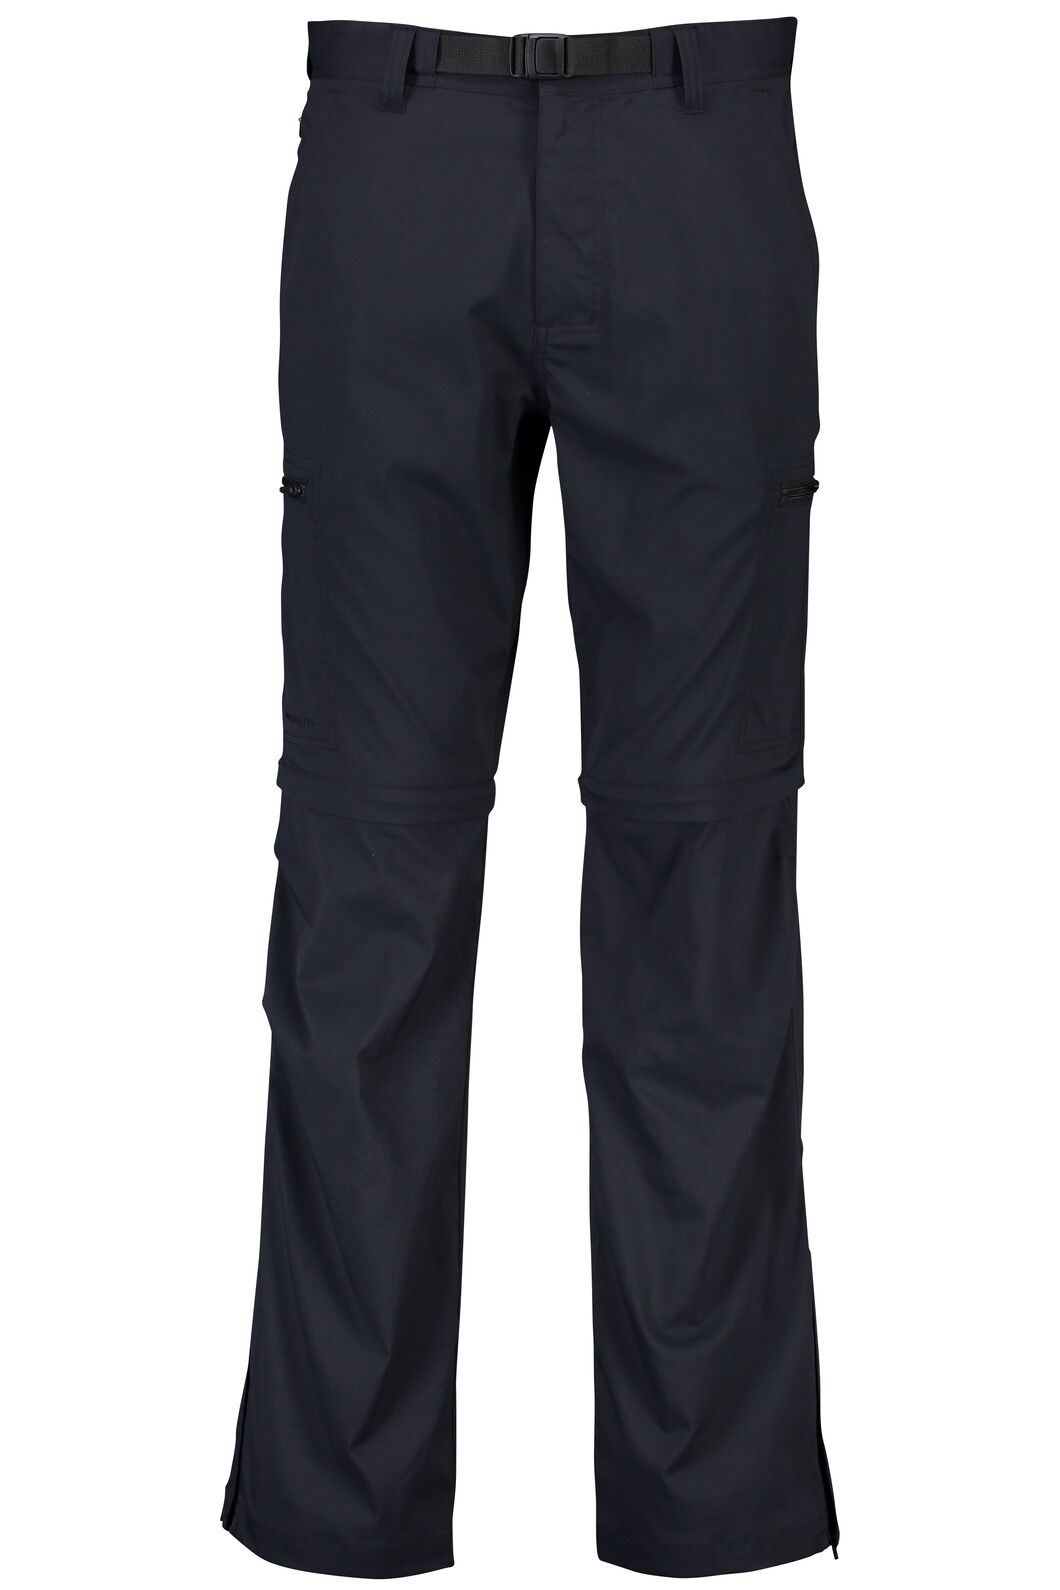 Macpac Rockover Convertible Pants — Men's, Black, hi-res